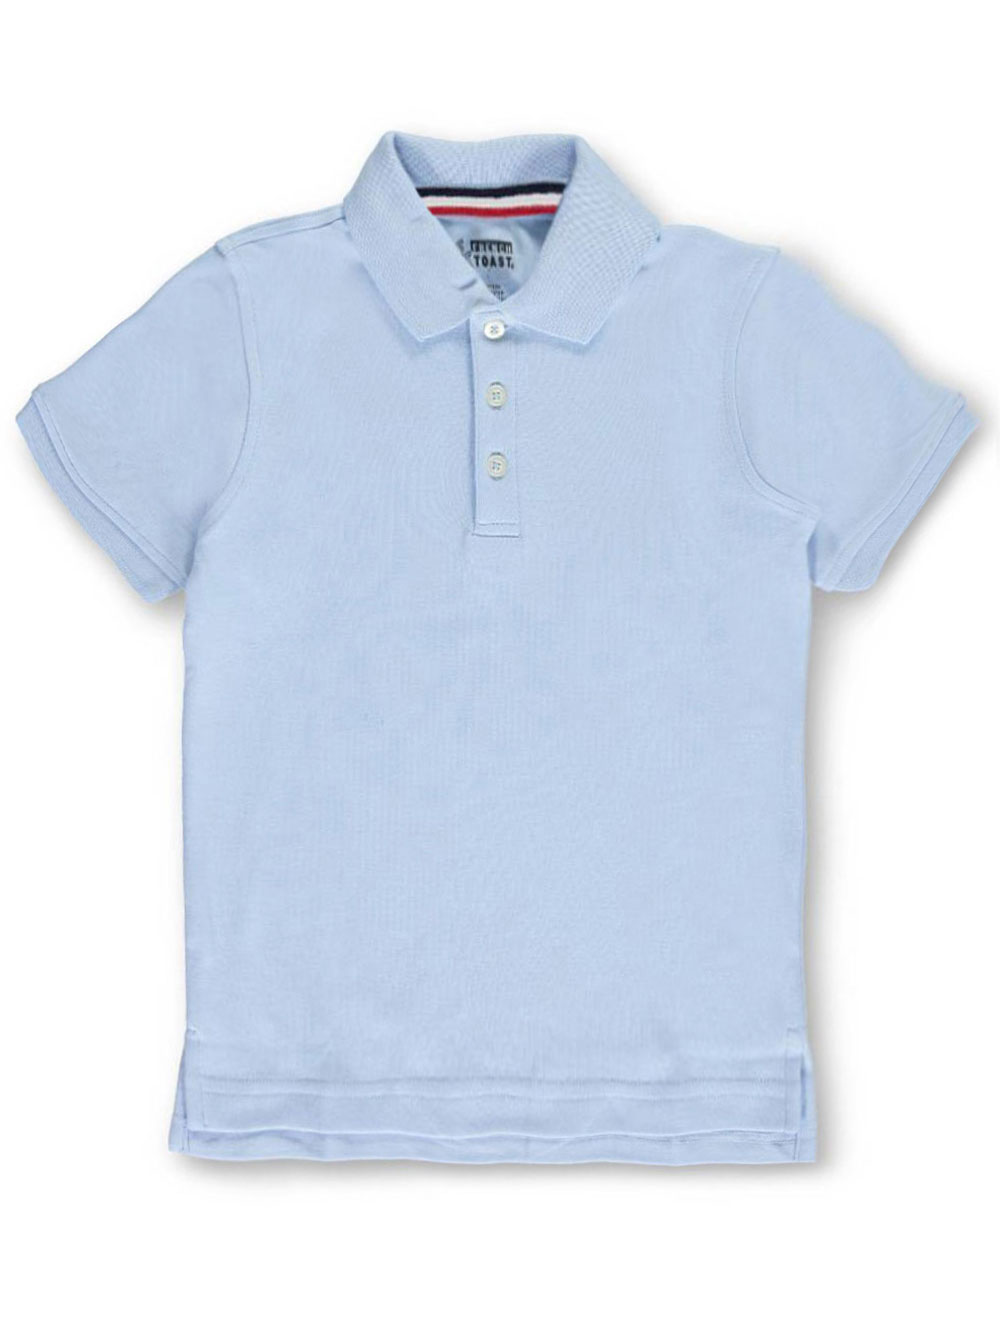 polo shirts types